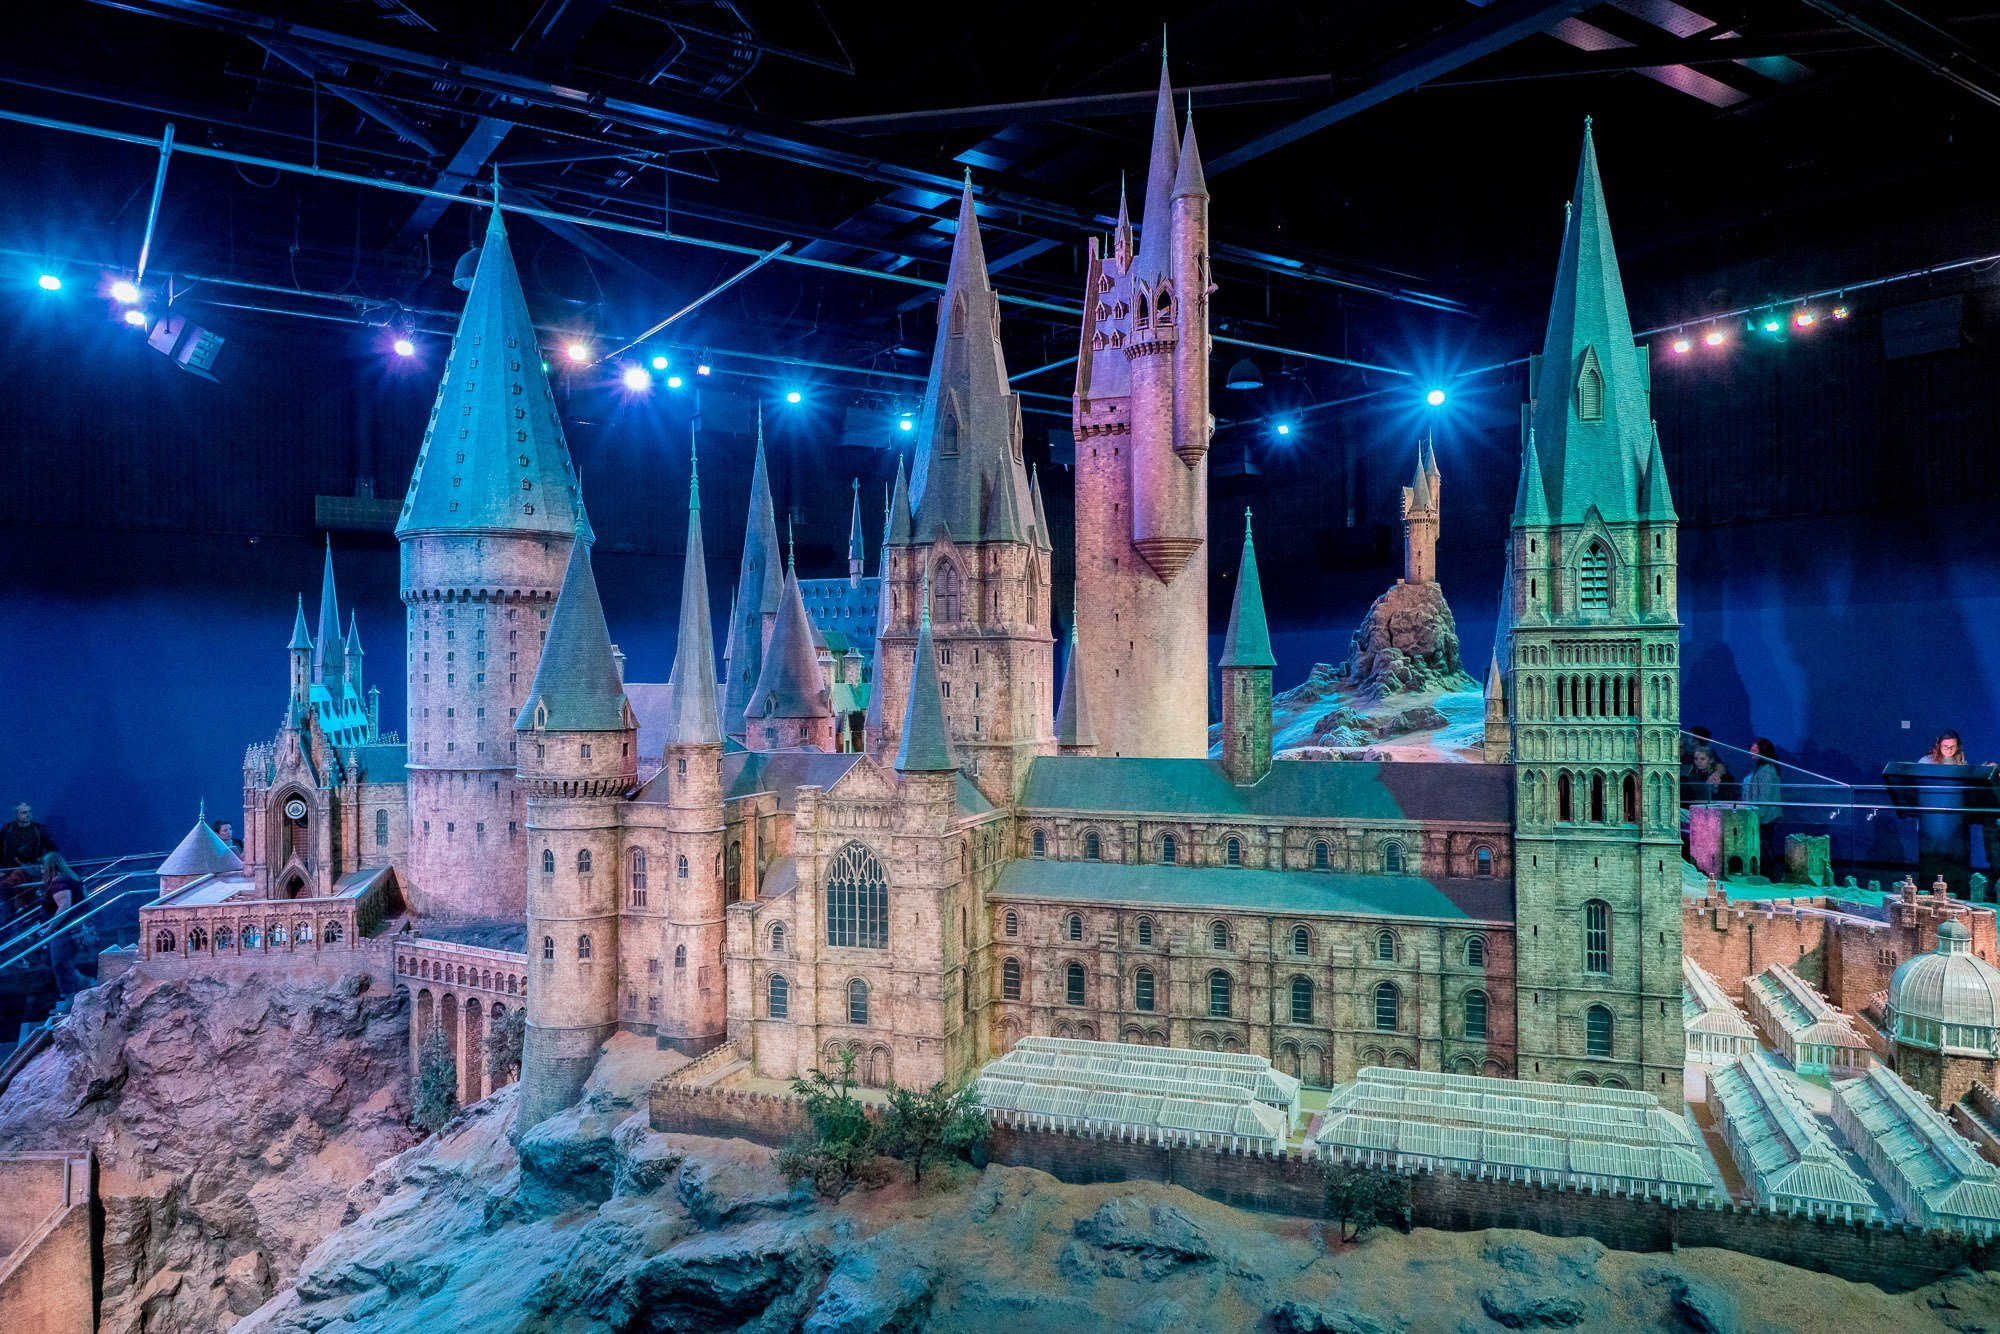 A model of Hogwarts ends the tour at Warner Bros. Studio Tour London.